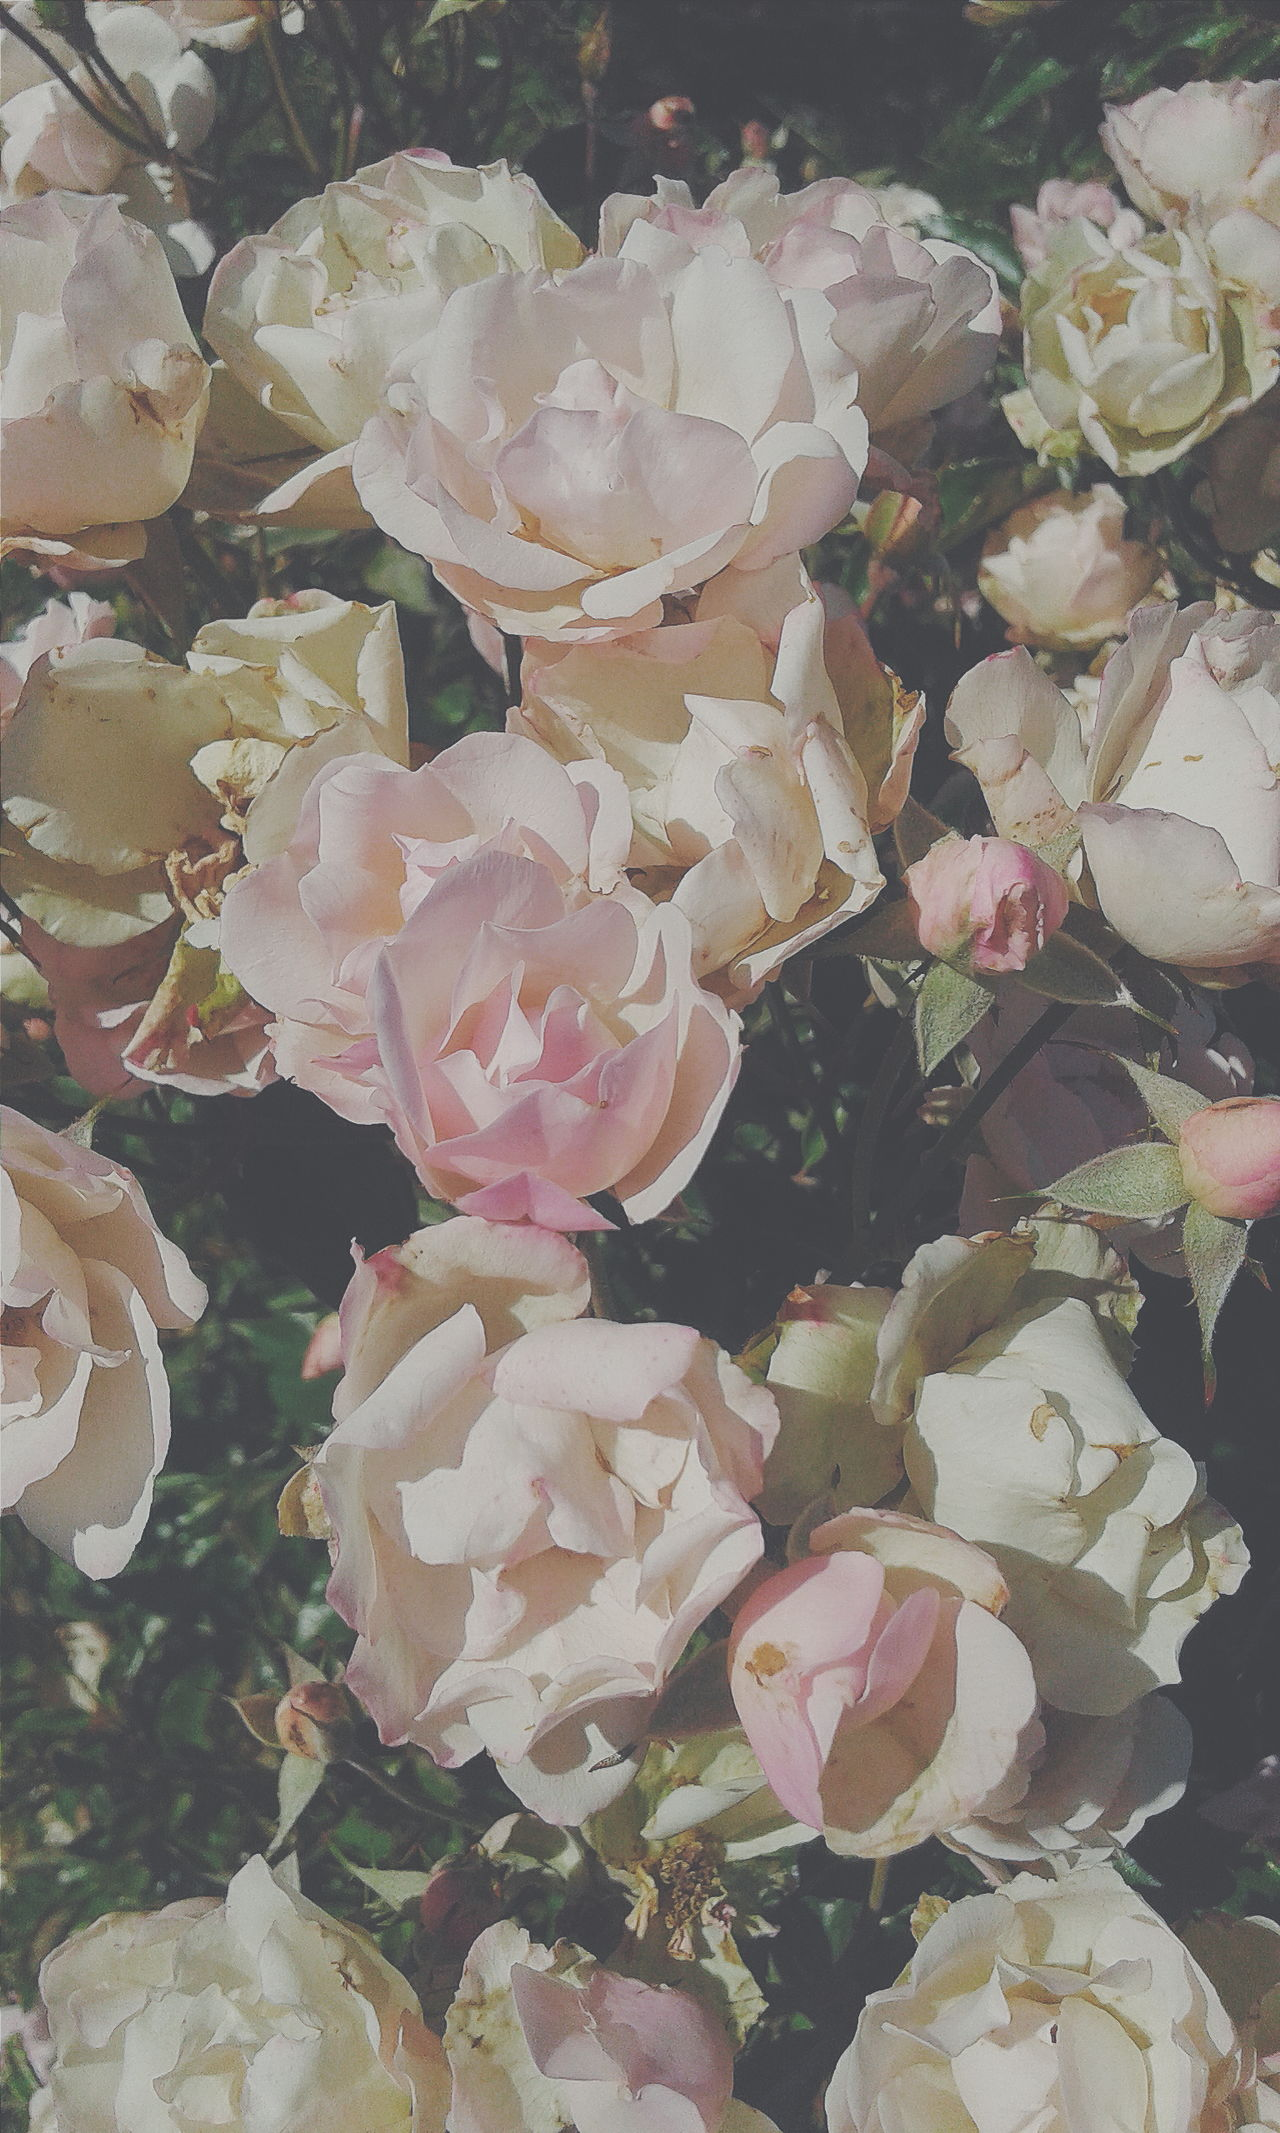 Vscocam Flowers Enjoying Life Check This Out Pink Pink Flower Nature Naturelovers Hello World Relaxing Chile Chilena